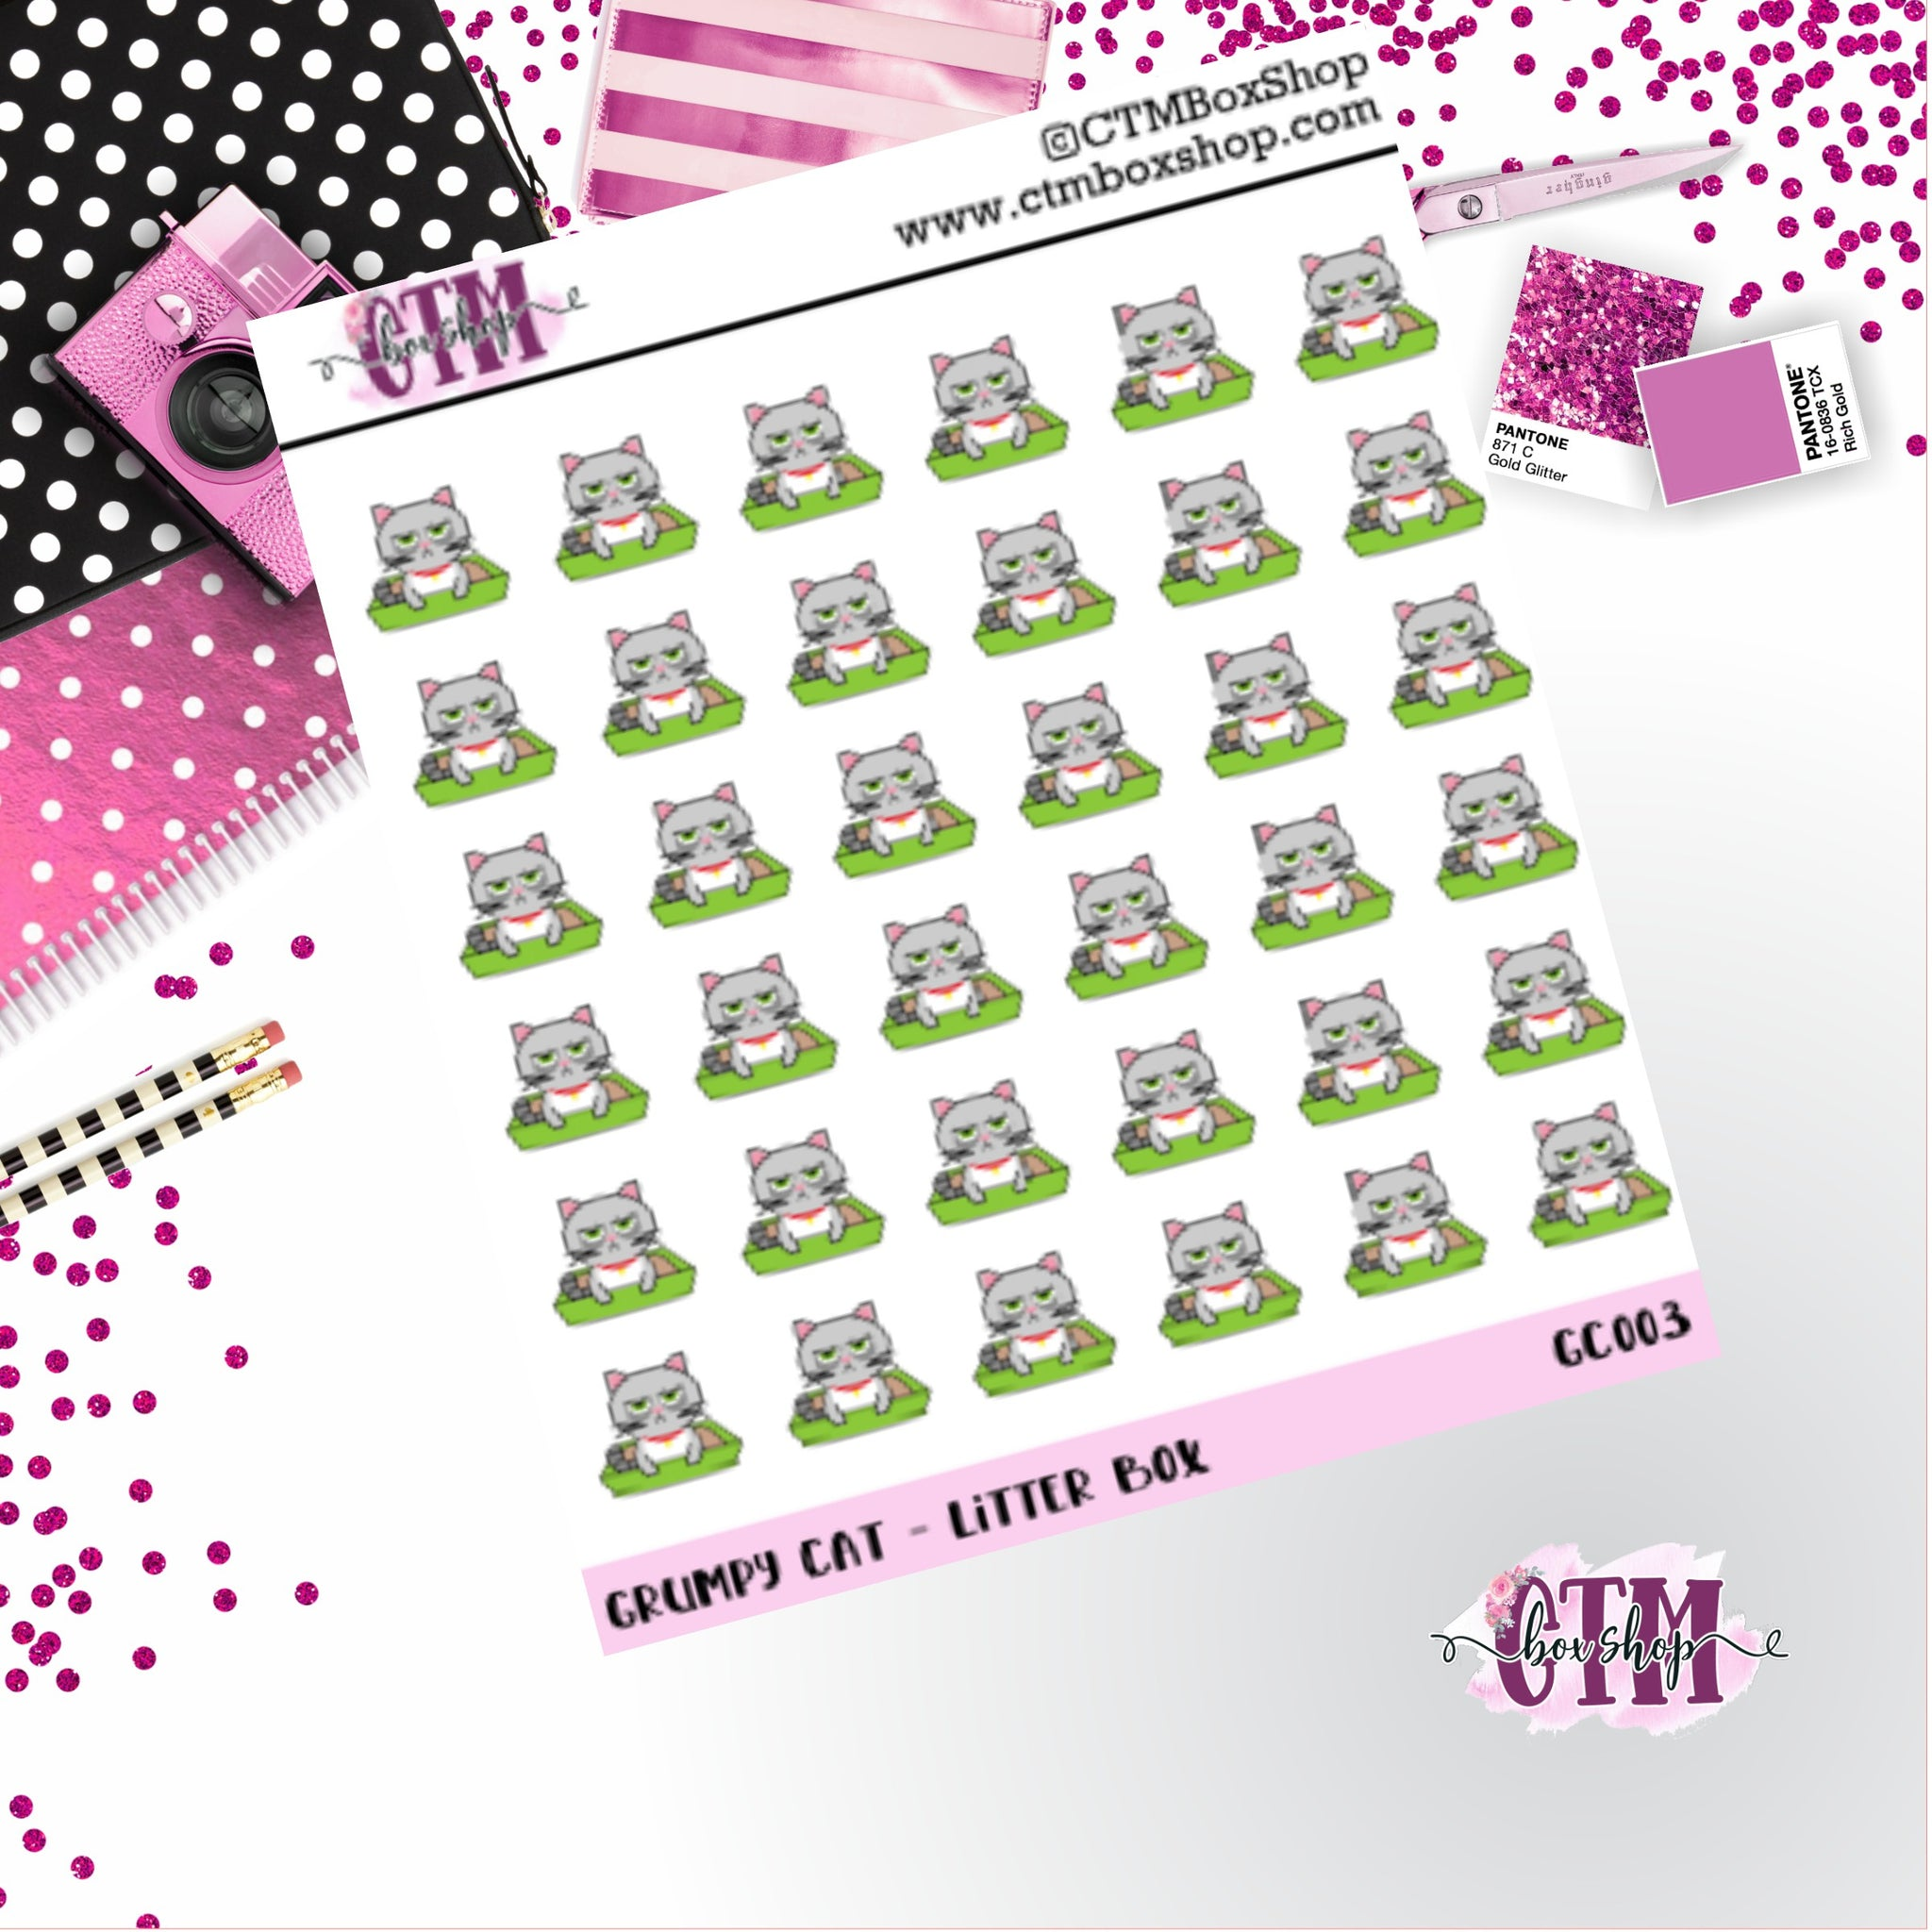 Grumpy Cat Litter Box  Grumpy Cat Stickers   Character Stickers   Planner Stickers   Functional Stickers   Deco Stickers